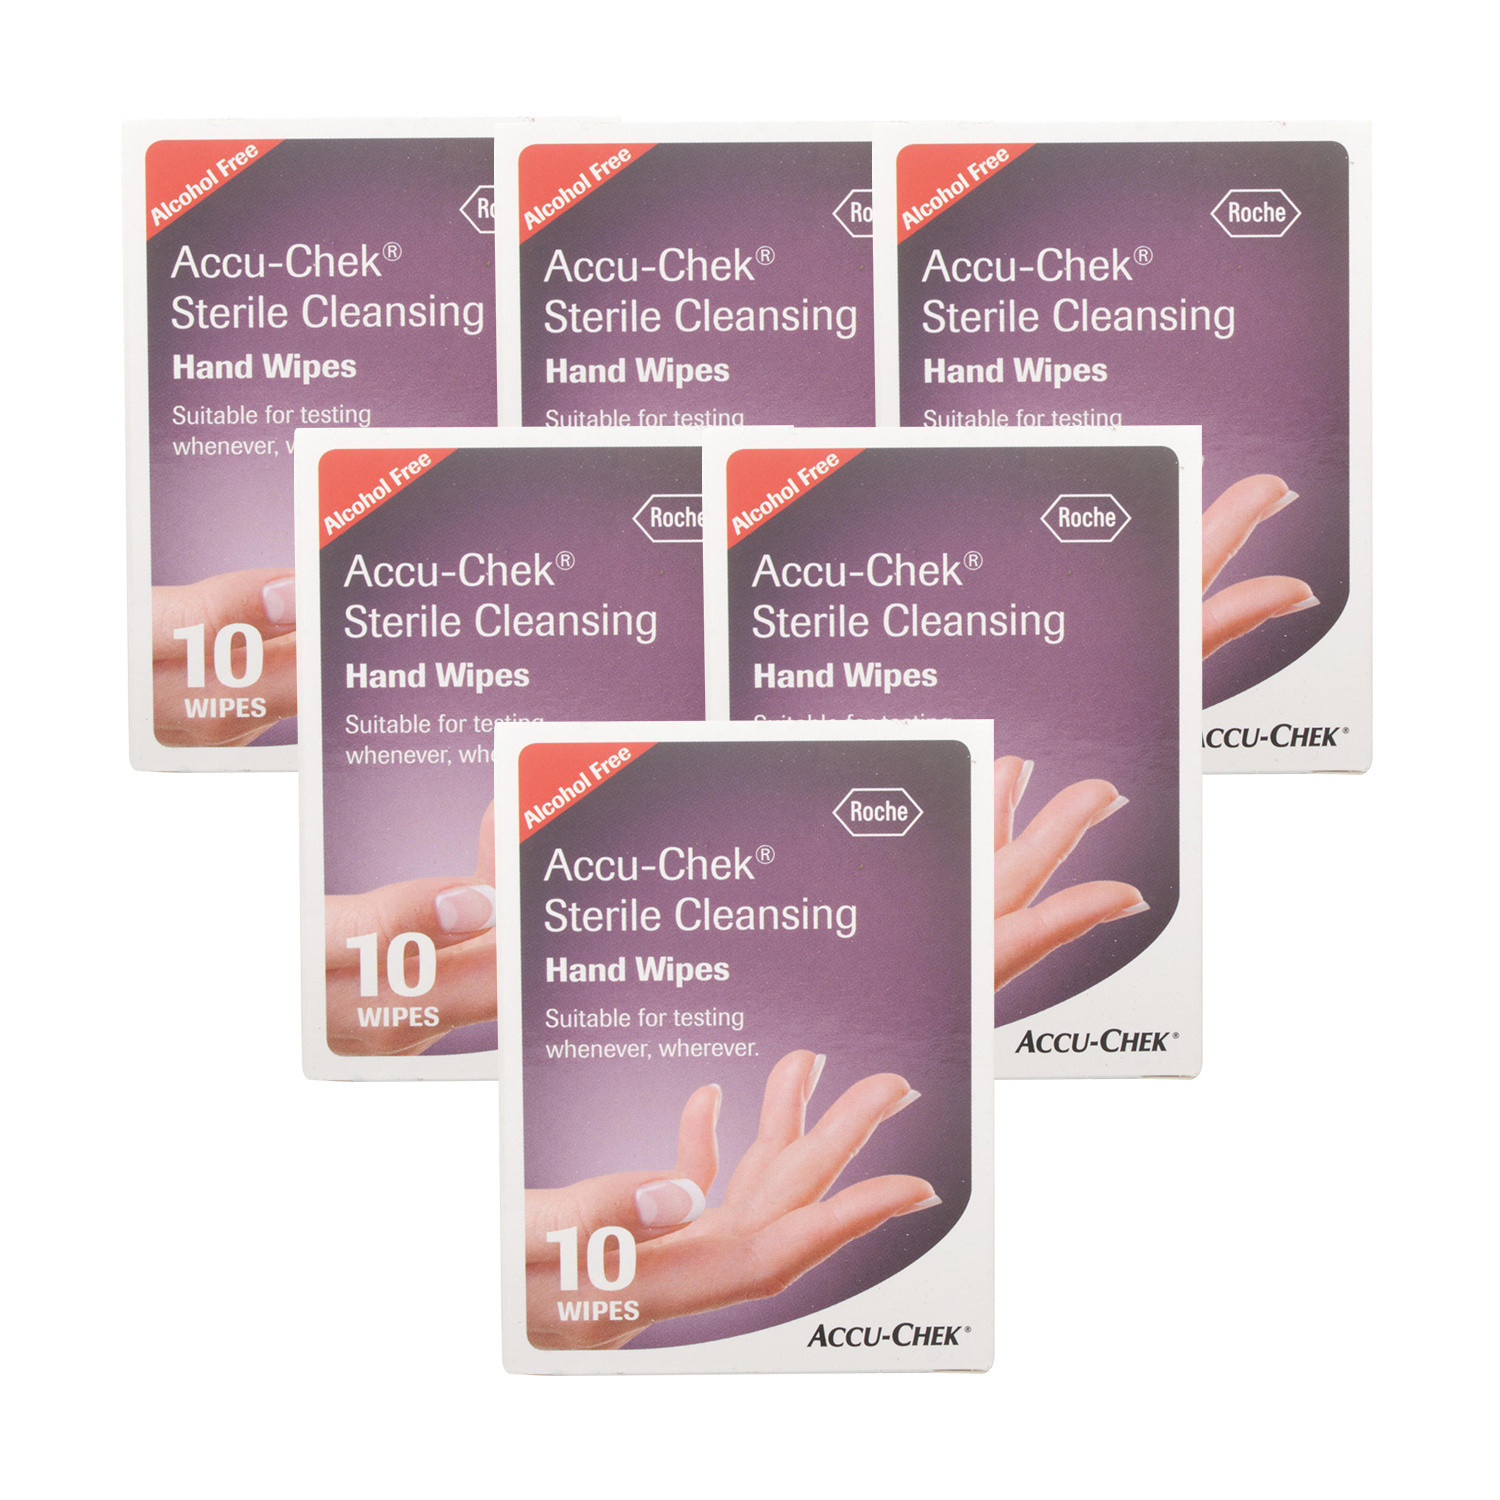 Stockists of Accu-Chek Sterile Cleansing Hand Wipes - 60 Wipes